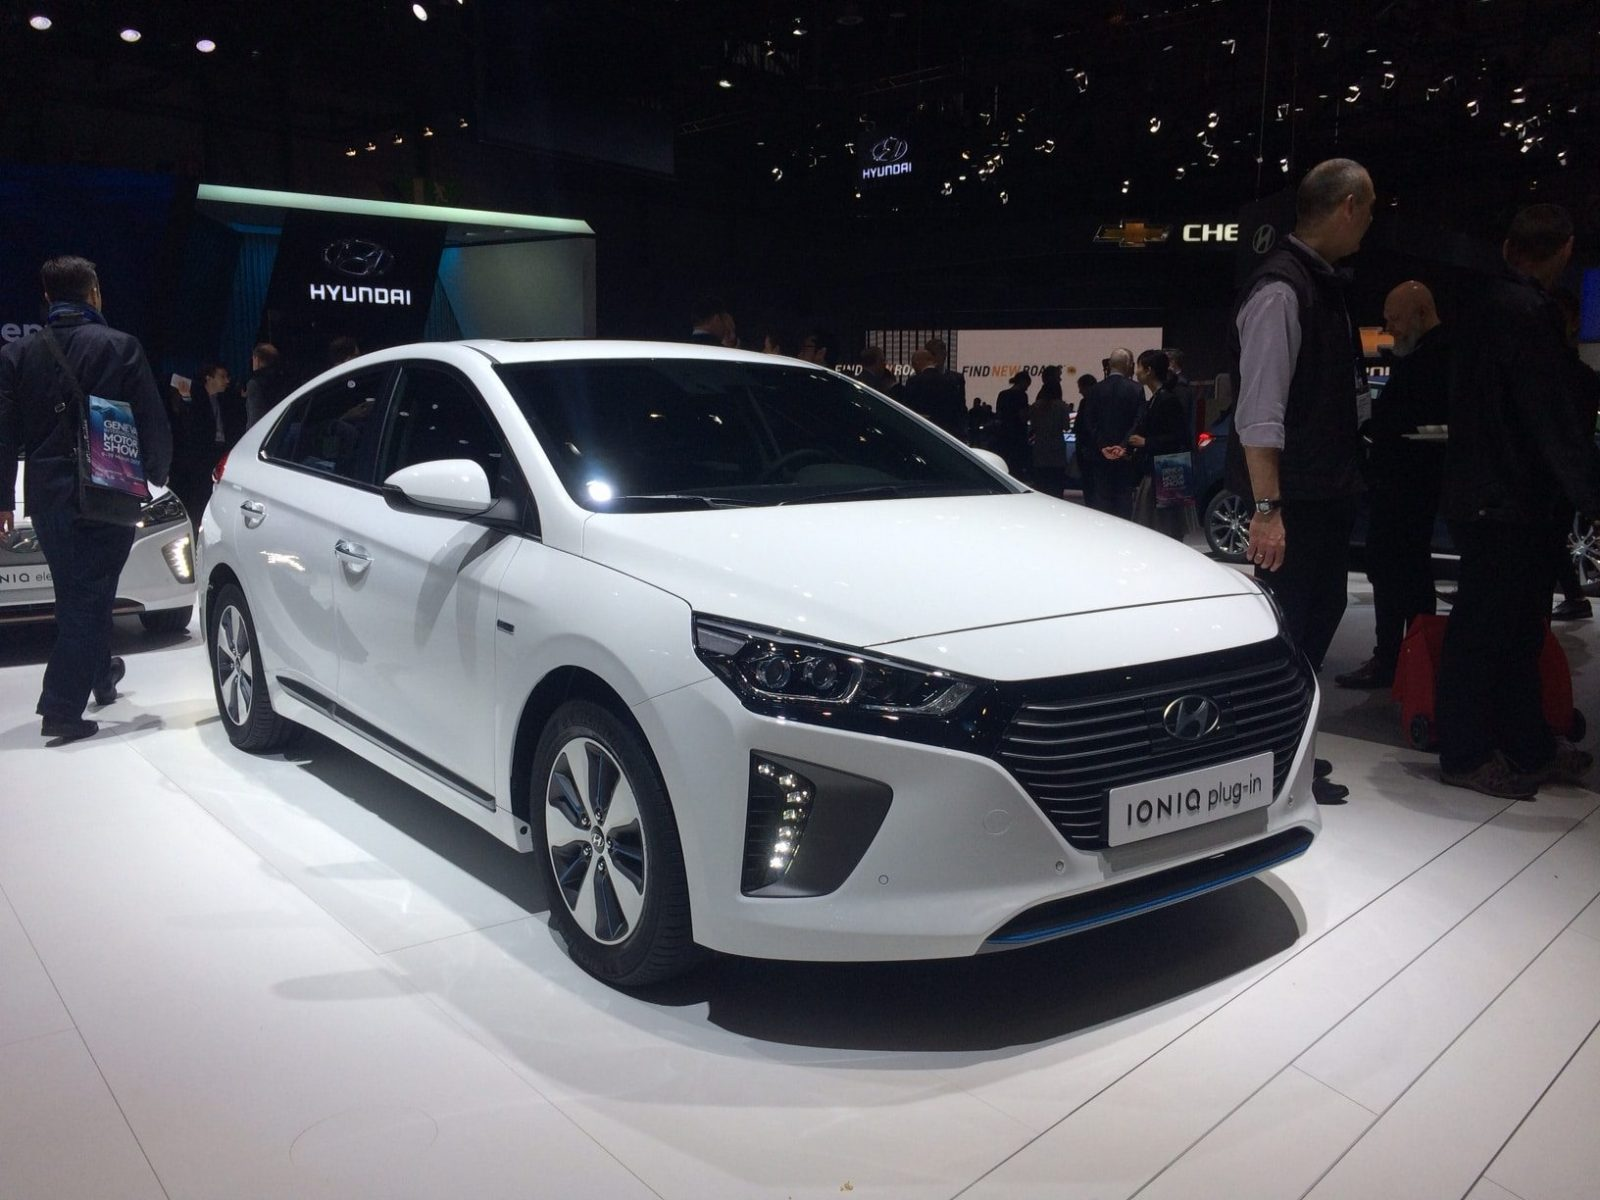 hyundai pr sente la ioniq plug in hybrid au salon de gen ve 2017. Black Bedroom Furniture Sets. Home Design Ideas